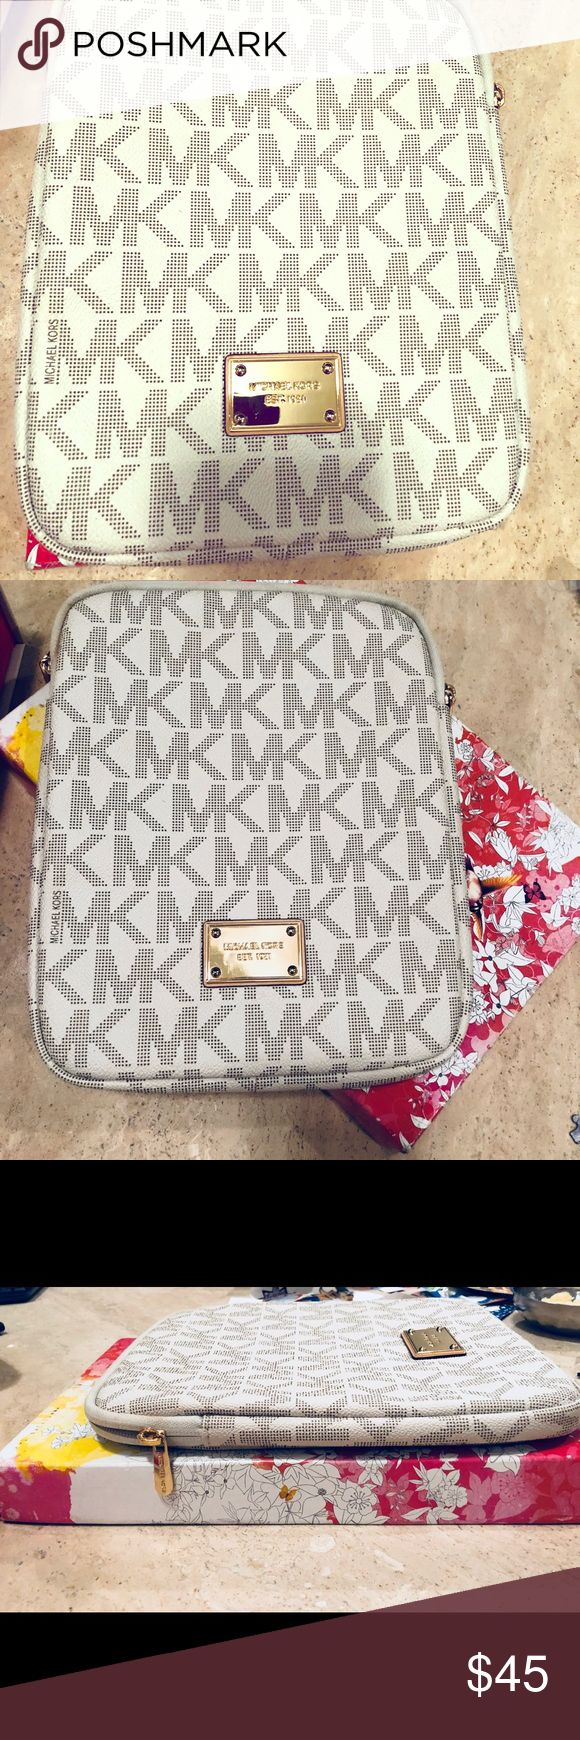 Authentic Michael Kors Tablet Case MK Used only a couple of times. Purchased in Dubai mall a couple of years ago. Under the case is a standard shoe box lid which will give you an idea of the size. Michael Kors Accessories Laptop Cases